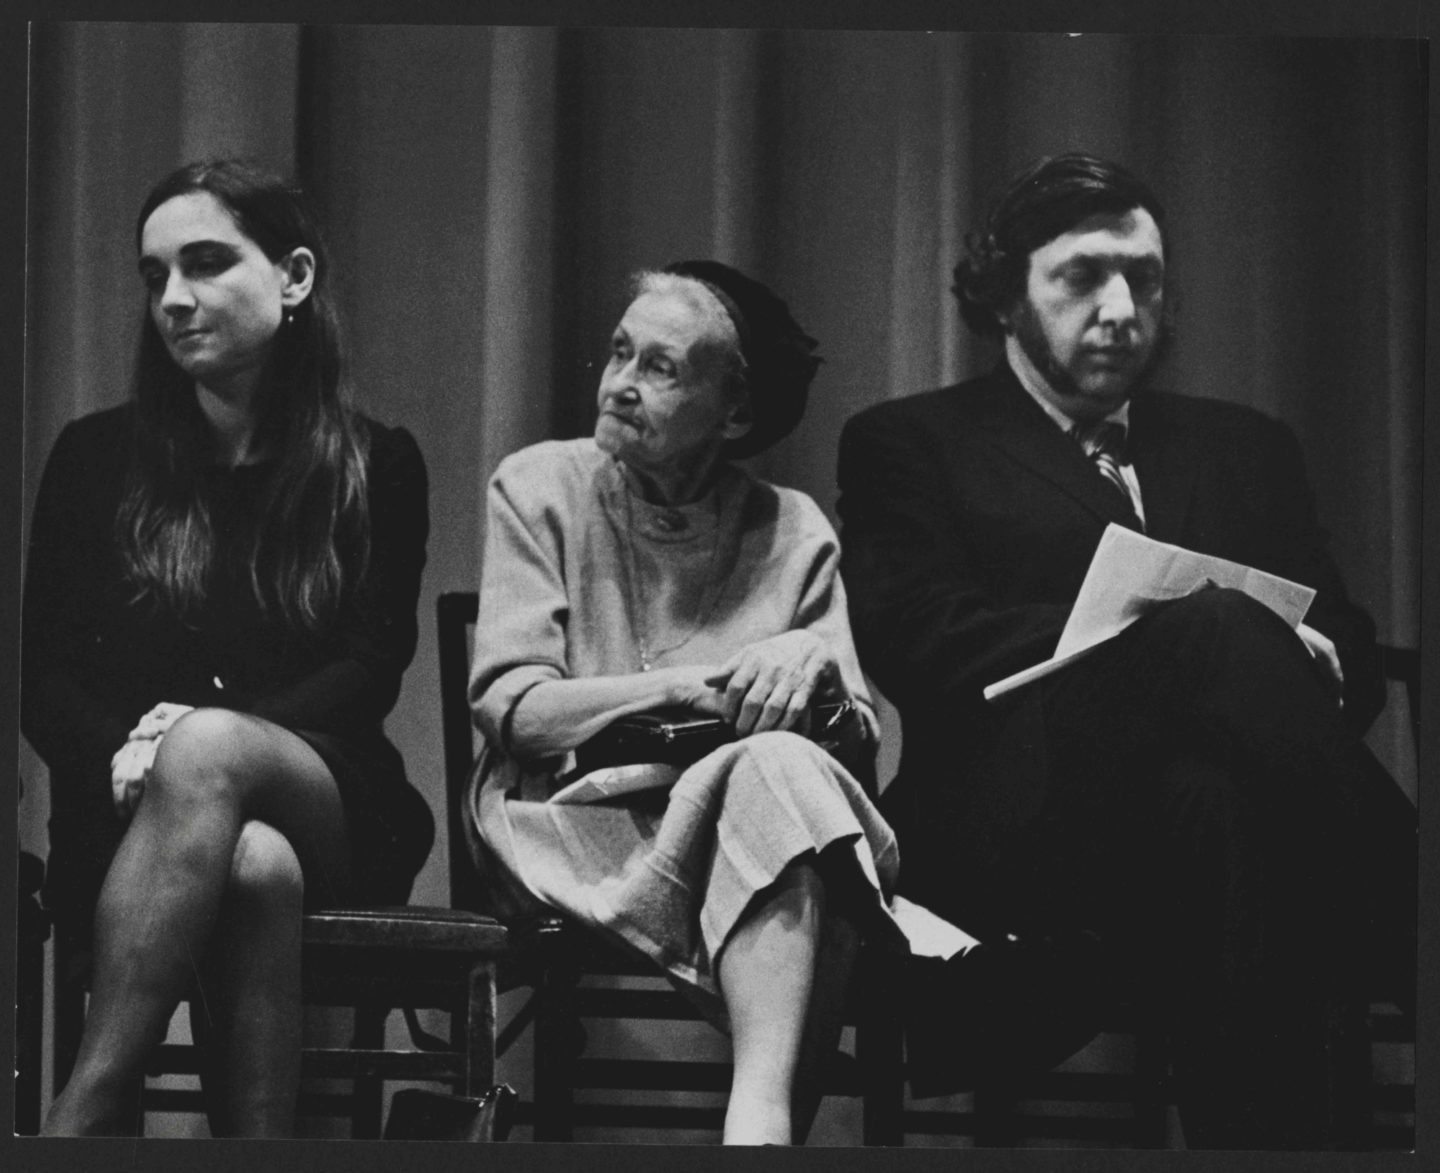 <p>Kadia Molodowsky seated between Adrienne Rich and John Hollander at a reading at the 92nd Street Y on November 2, 1969. Photo © Arnold Chekow (used with permission).</p>